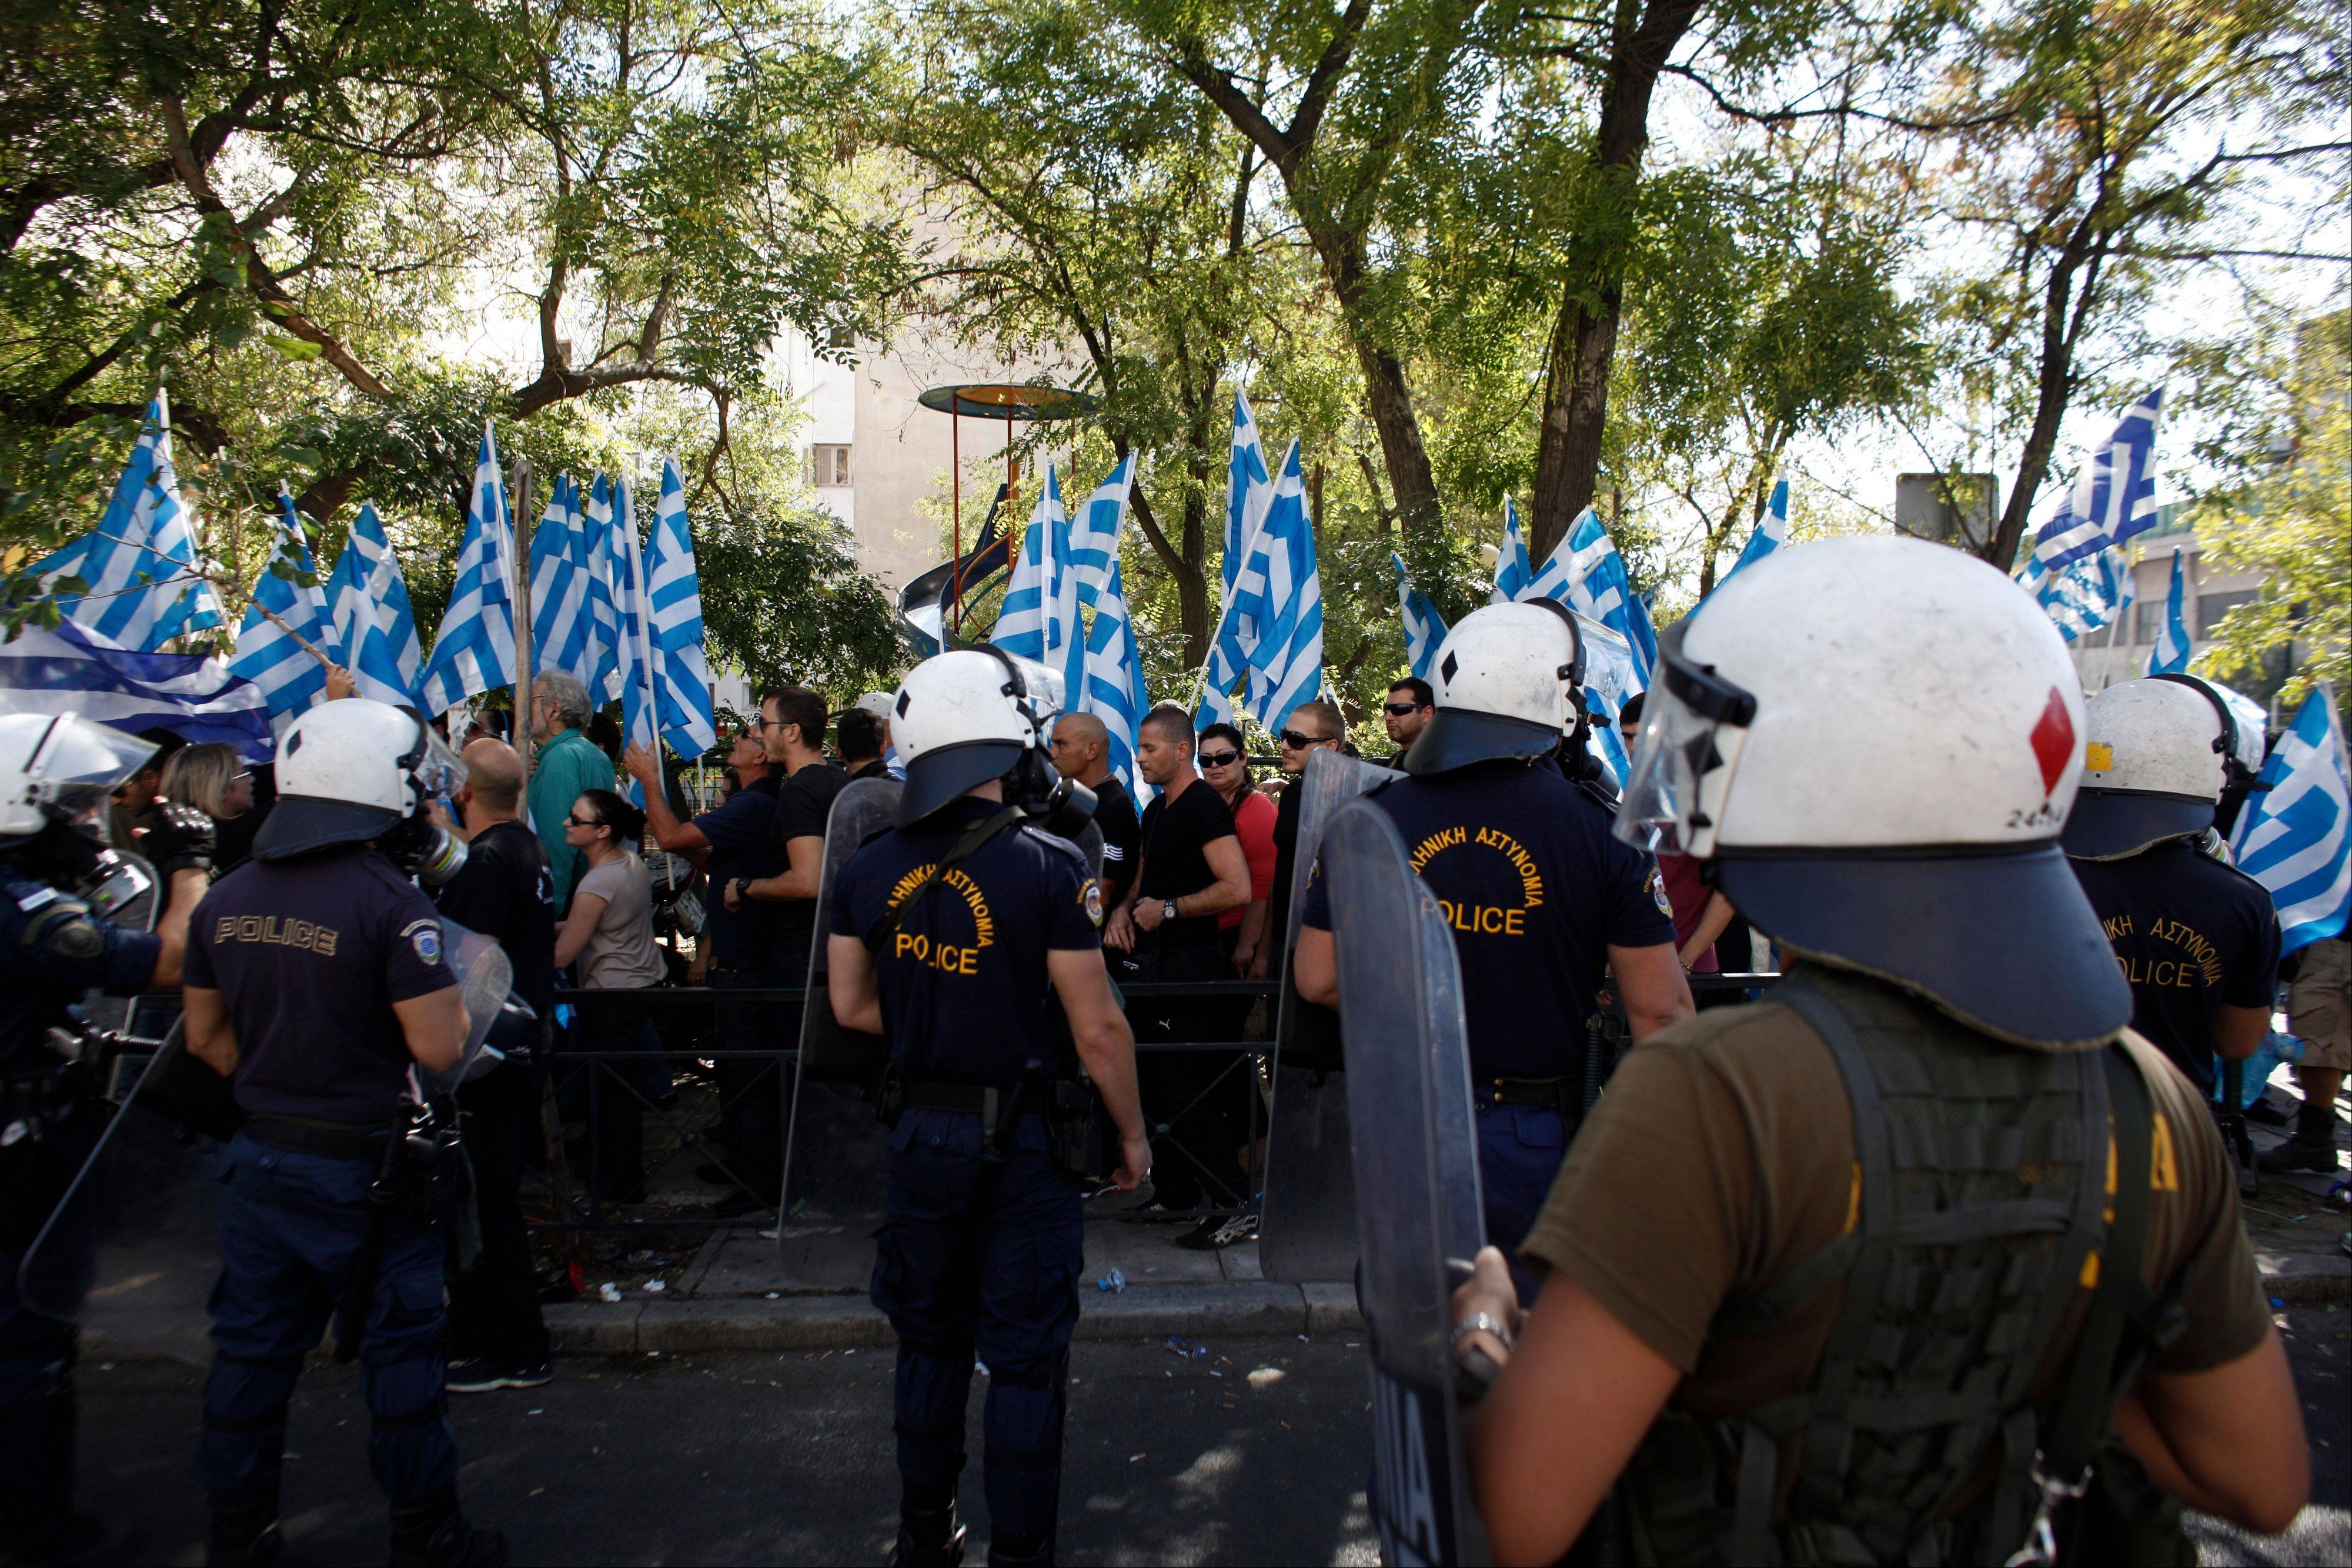 Riot police officers watch supporters of the extreme far-right Golden Dawn party during a protest in solidarity of the arrested lawmakers in front of the headquarters of Greek Police, in Athens, Saturday, Sept. 28. Police arrested the leader of Greece�s extreme-right Golden Dawn party and other top members on Saturday, in an escalation of a government crackdown after a fatal stabbing allegedly committed by a supporter. It is the first time since 1974 that sitting members of Parliament have been arrested.